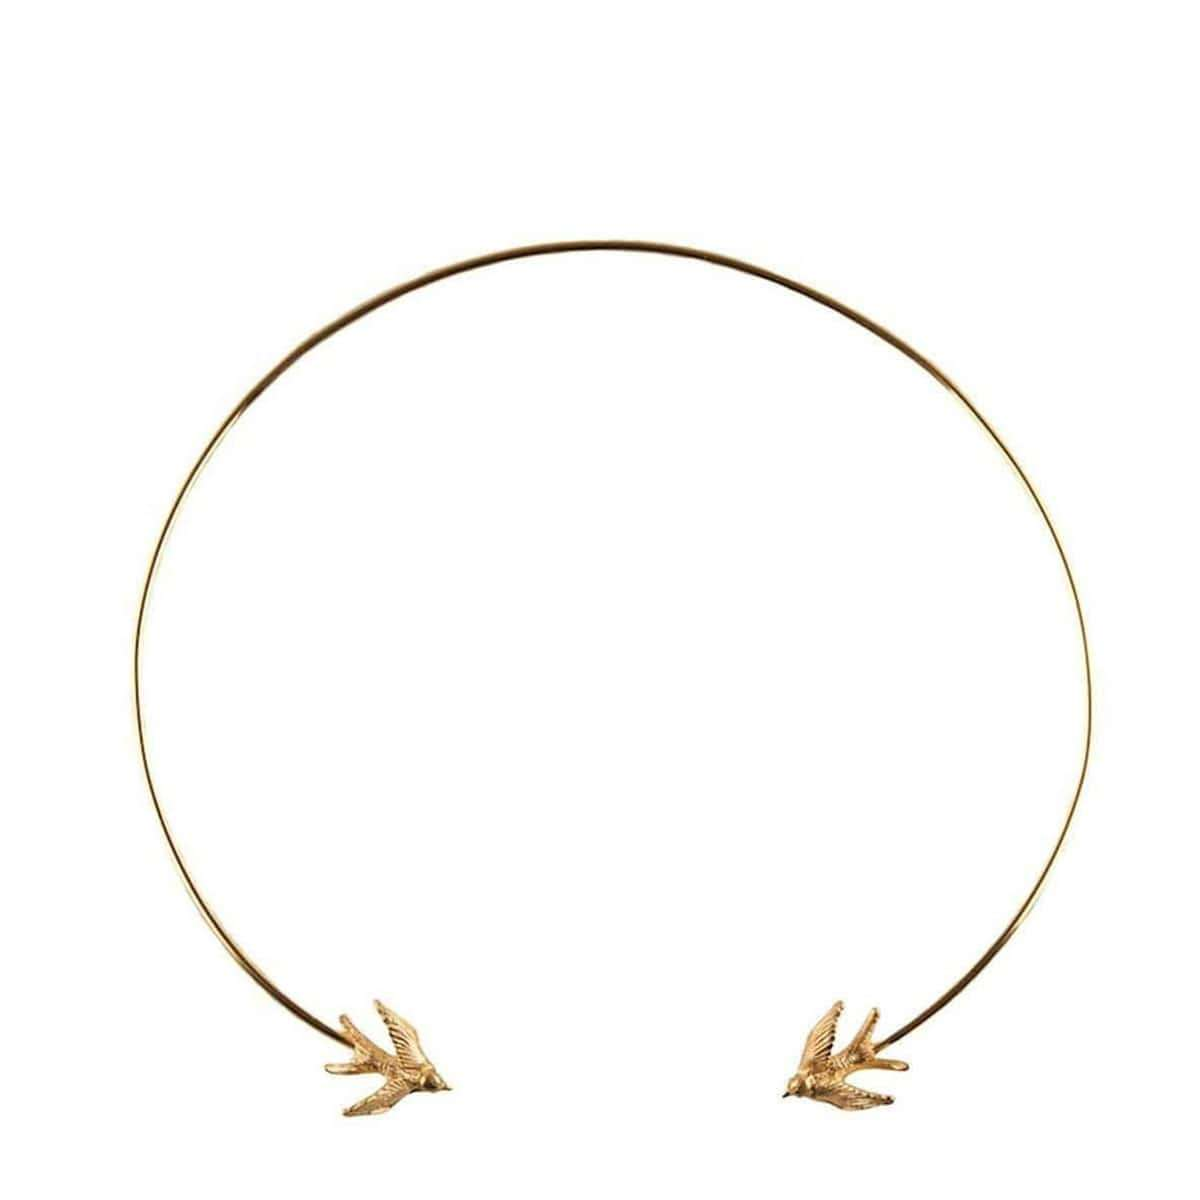 Gold Swallow Torc Necklace, Roz Buehrlen